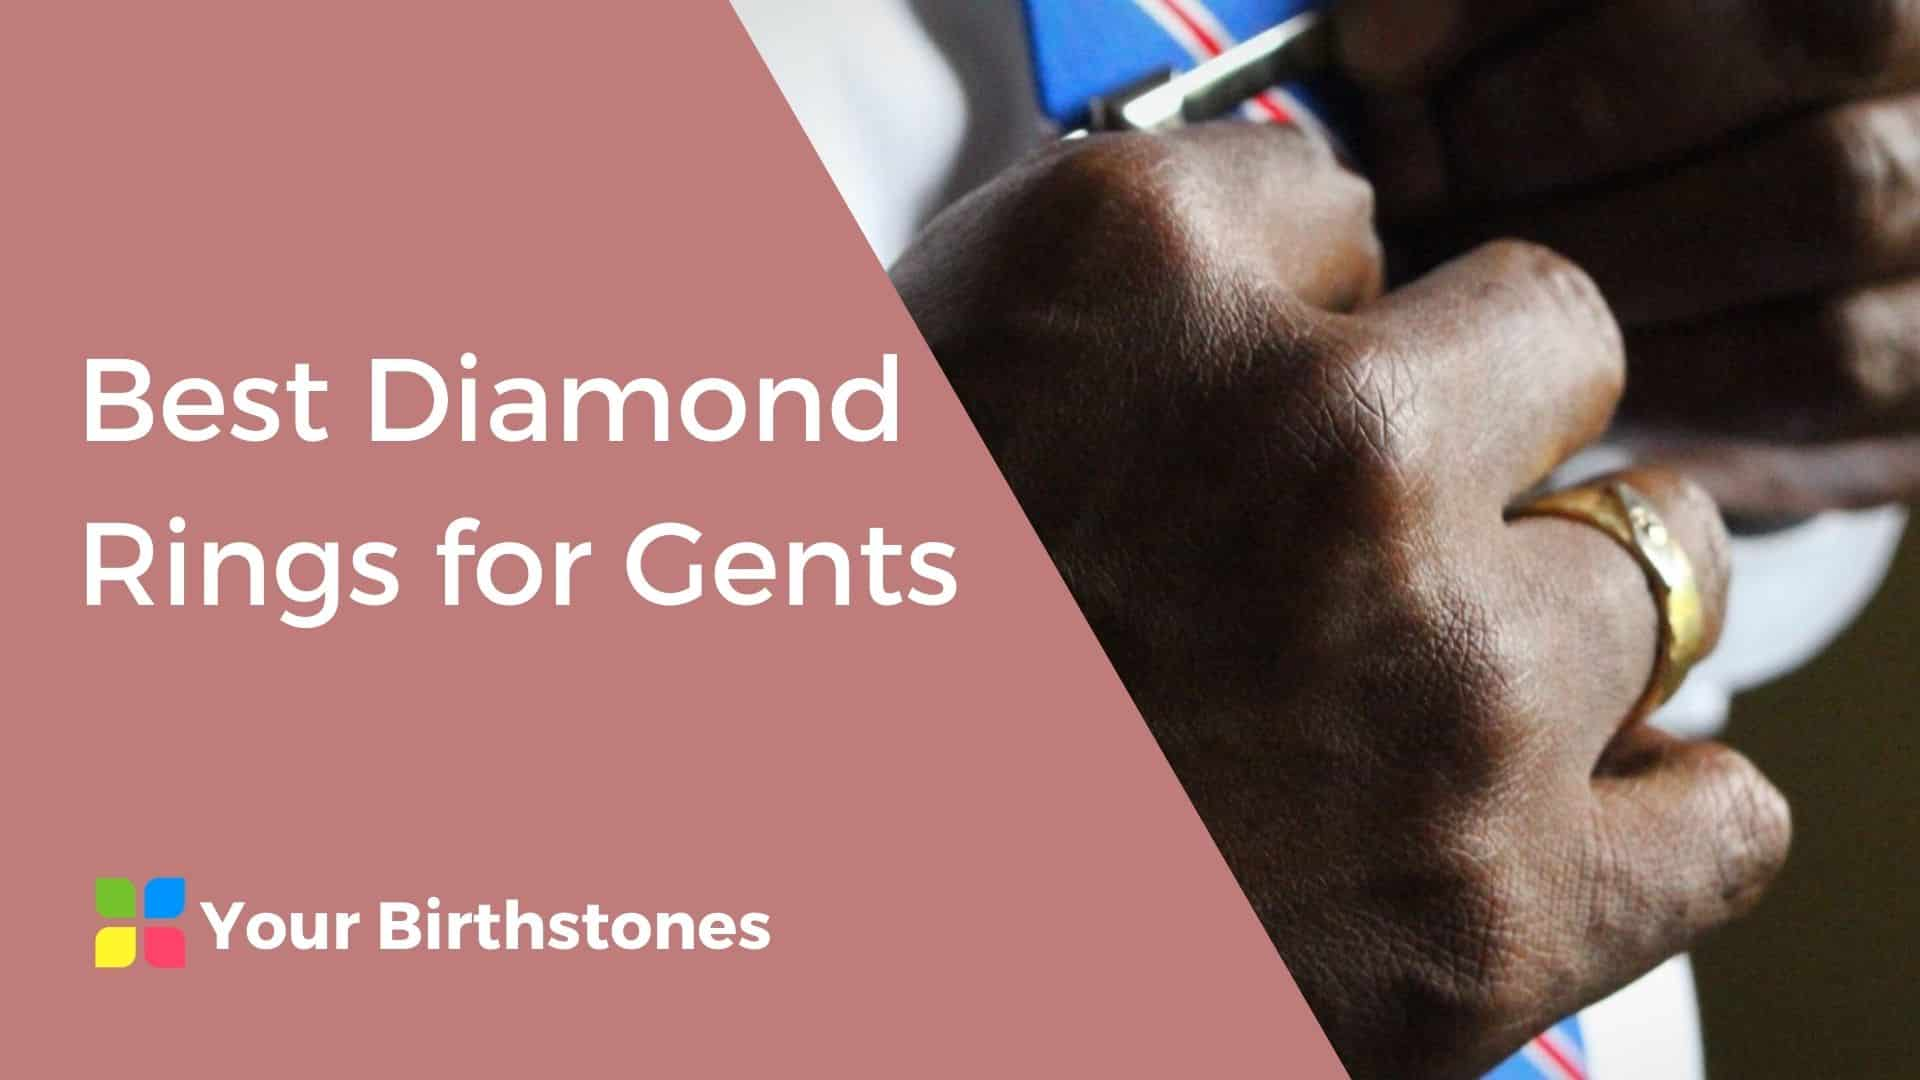 Best Diamond Rings for Gents